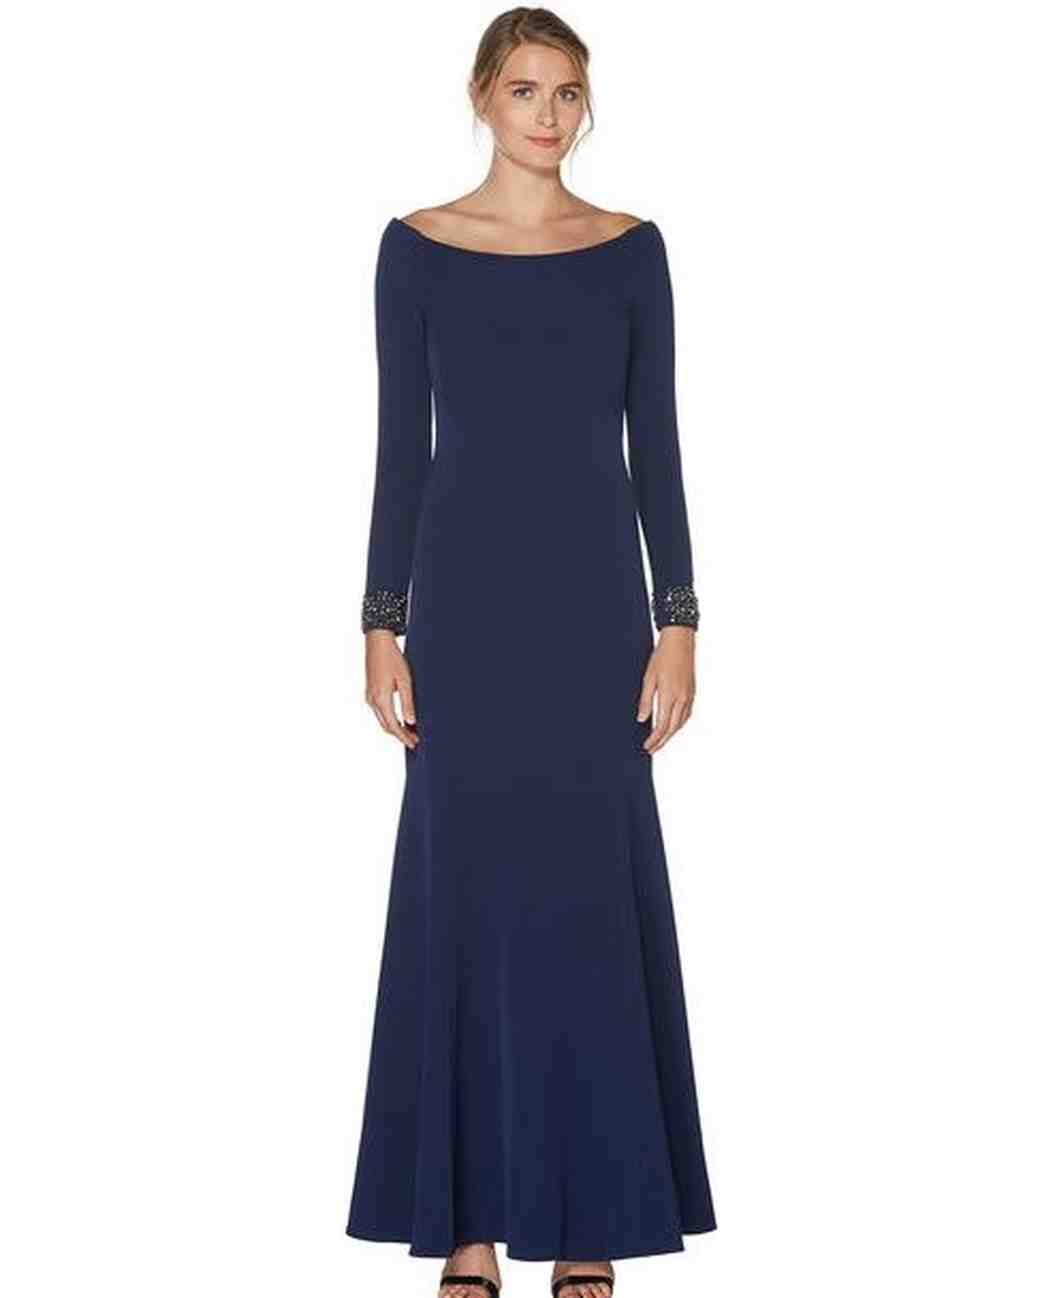 Navy Mother of the Bride Dress, Long Sleeve Laundry by Shelli Segal Dress